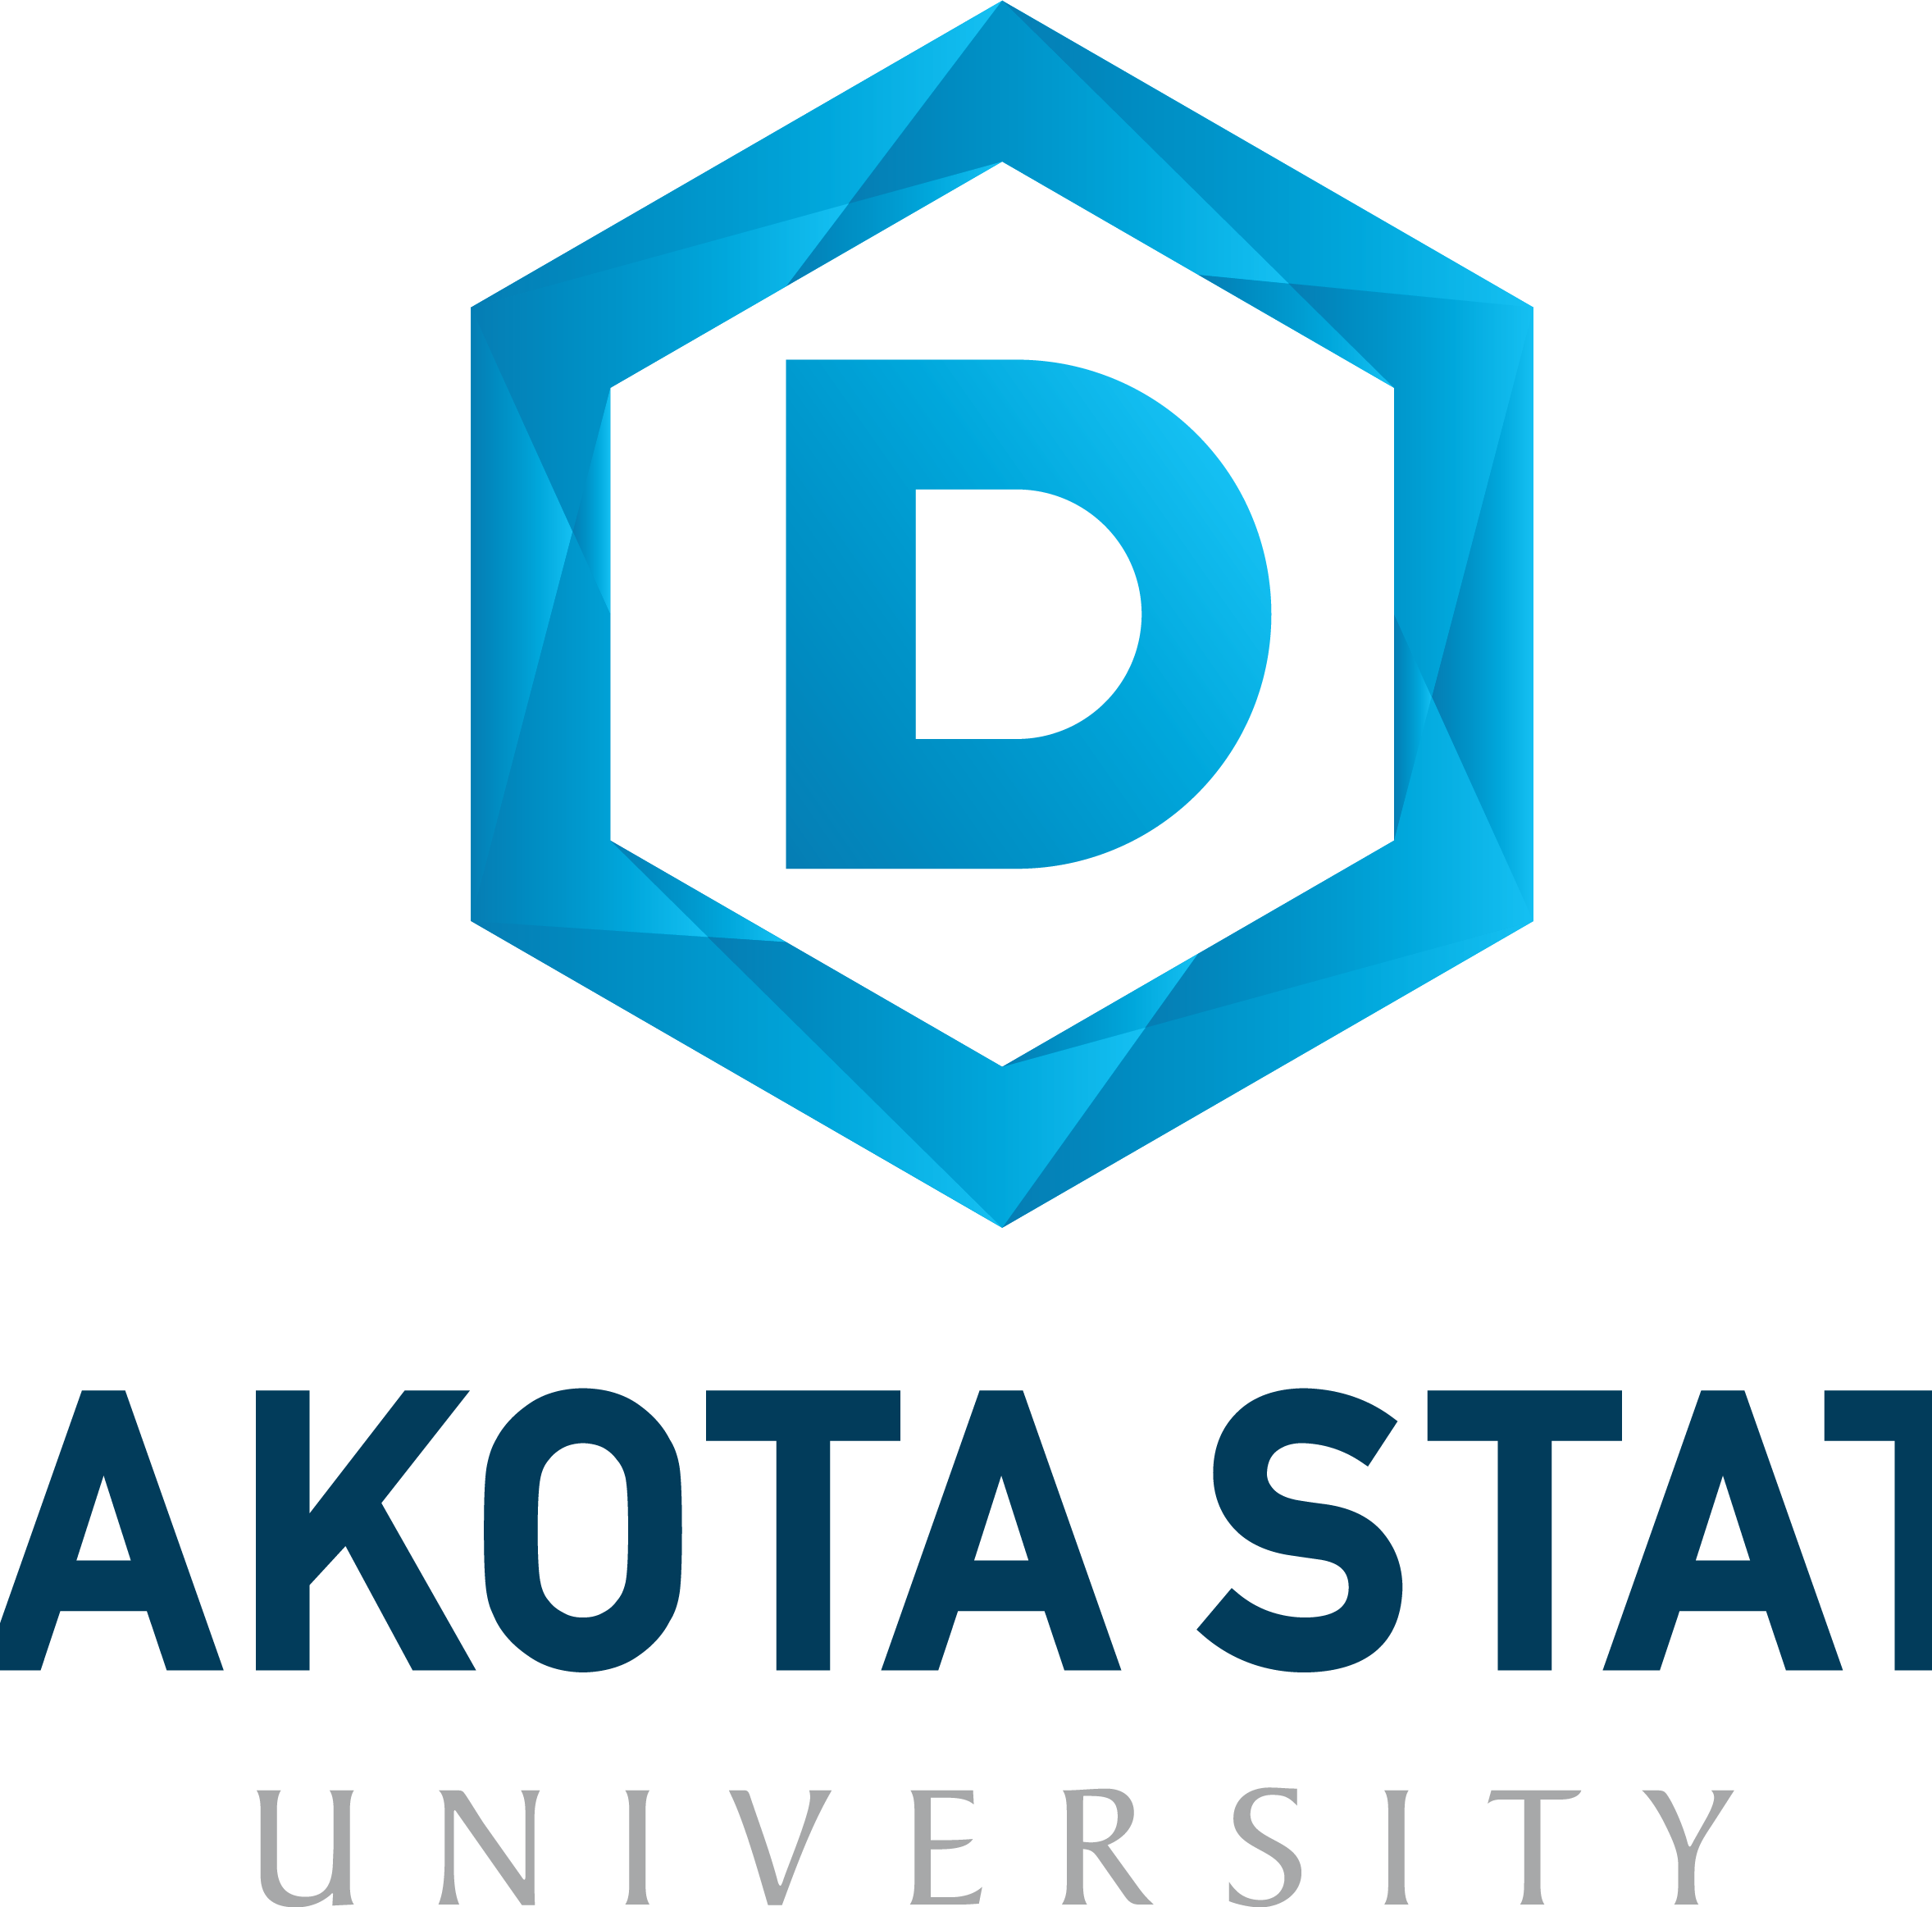 DSU becomes the 3rd school system to rebrand within the last month